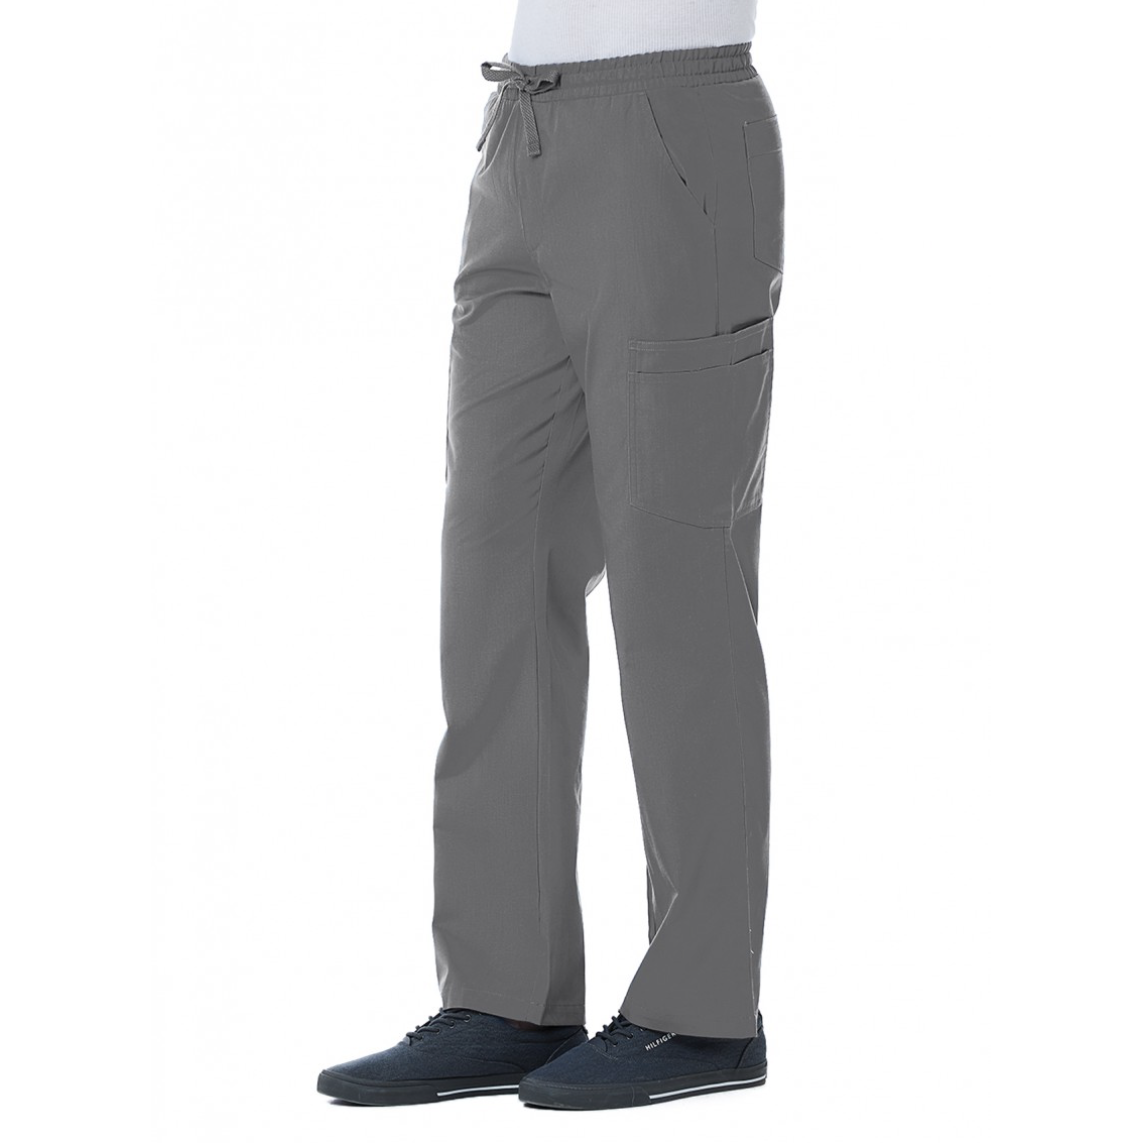 Men's Full Elastic 10-Pocket Cargo Pant 8206T Tall INSEAM 33''